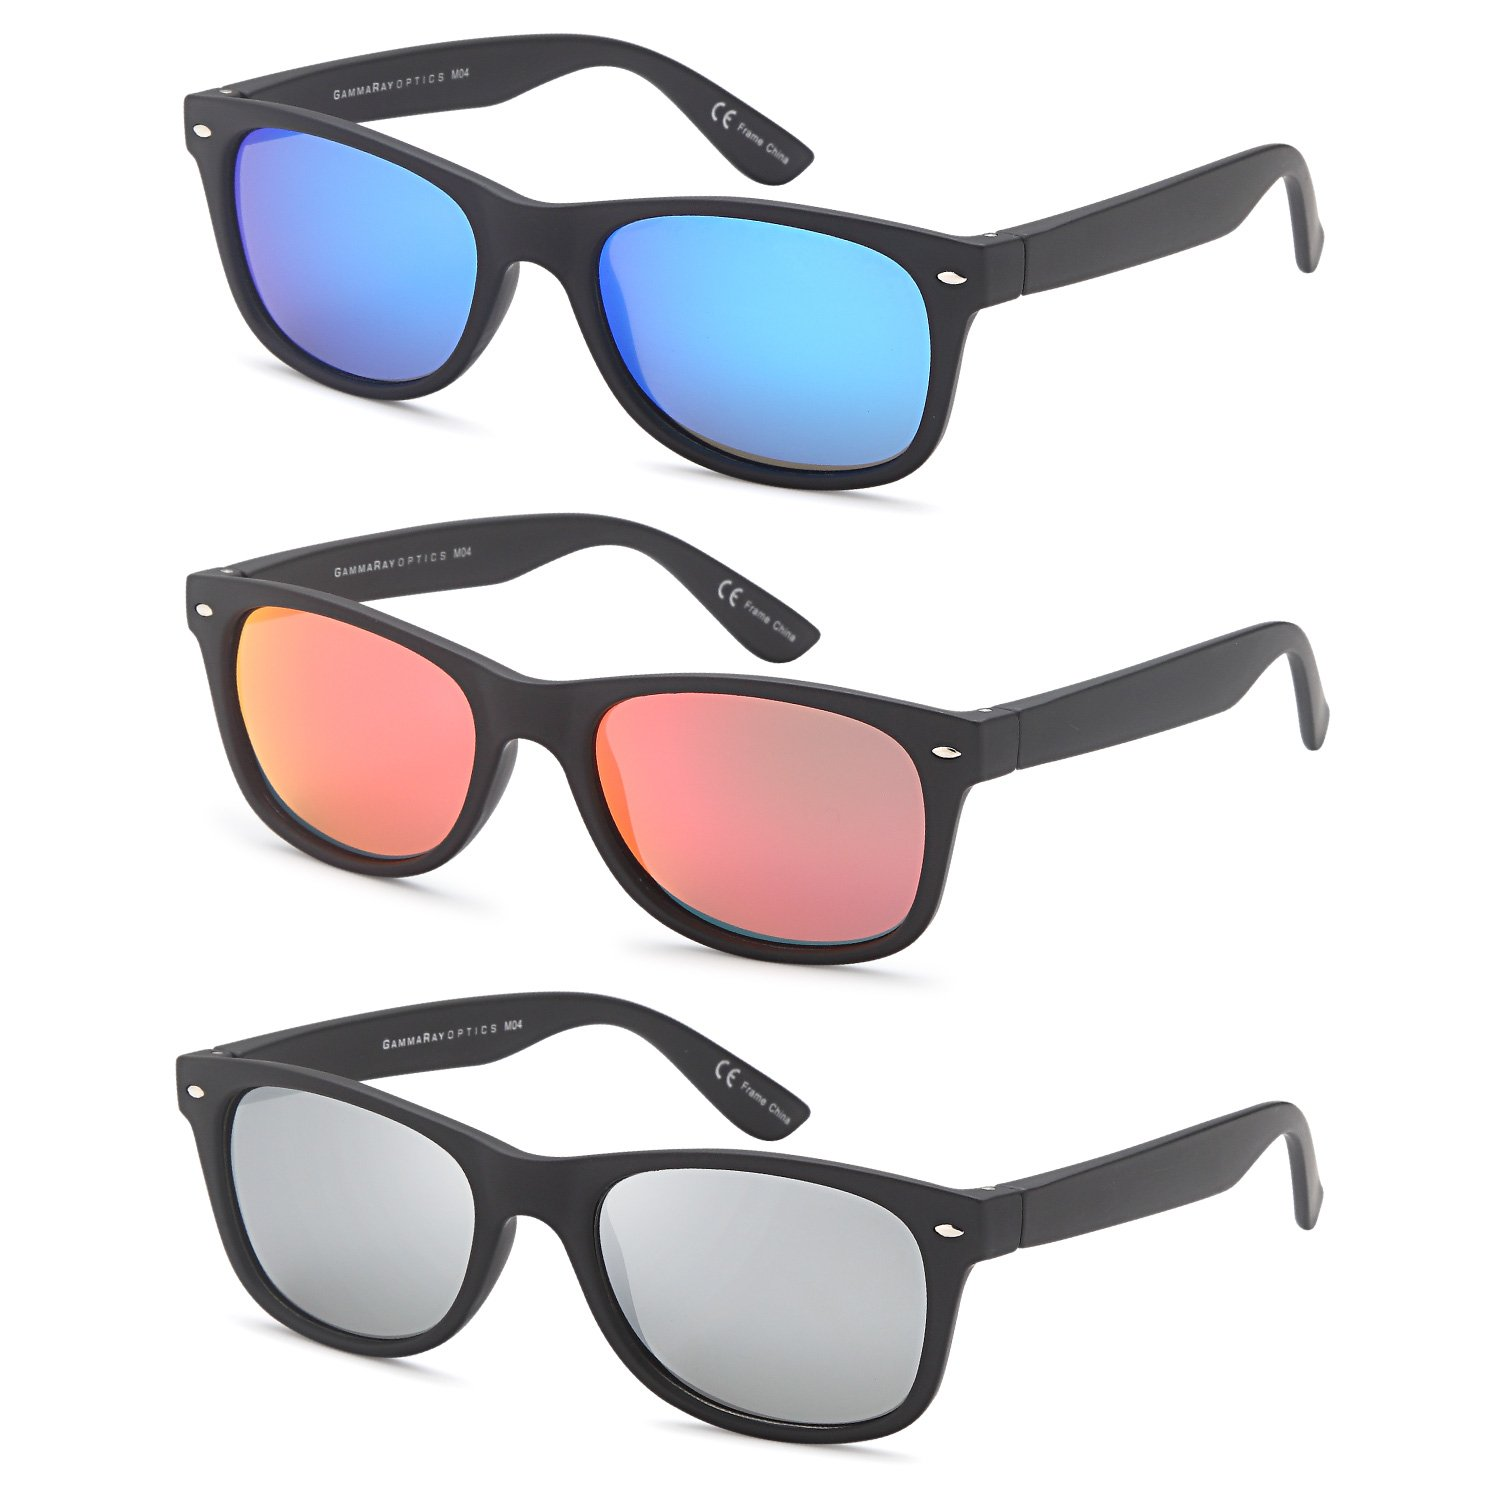 863d986f509 Amazon.com  Gamma Ray Polarized UV400 Classic Style Sunglasses with Mirror  Lens